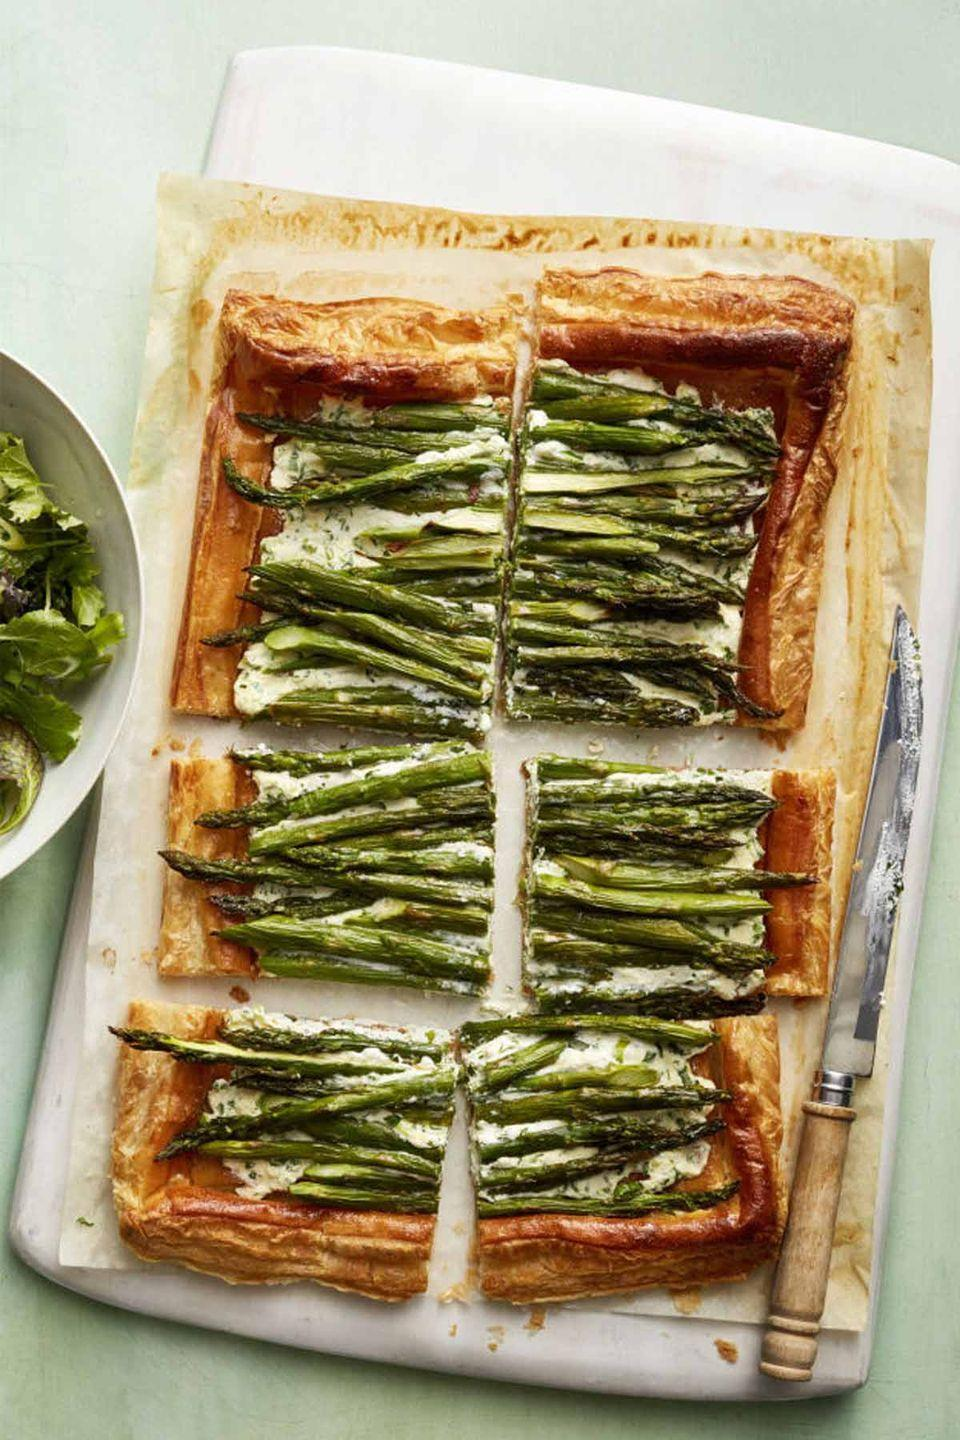 """<p>Topped with creamy ricotta and roasted asparagus, this crispy puff pastry tart can be the main course or served just before mom's favorite entrée at her Mother's Day dinner.</p><p><em><a href=""""https://www.womansday.com/food-recipes/food-drinks/recipes/a58519/asparagus-ricotta-tart-recipe/"""" rel=""""nofollow noopener"""" target=""""_blank"""" data-ylk=""""slk:Get the recipe for Asparagus and Ricotta Tart."""" class=""""link rapid-noclick-resp"""">Get the recipe for Asparagus and Ricotta Tart.</a> </em><br></p>"""